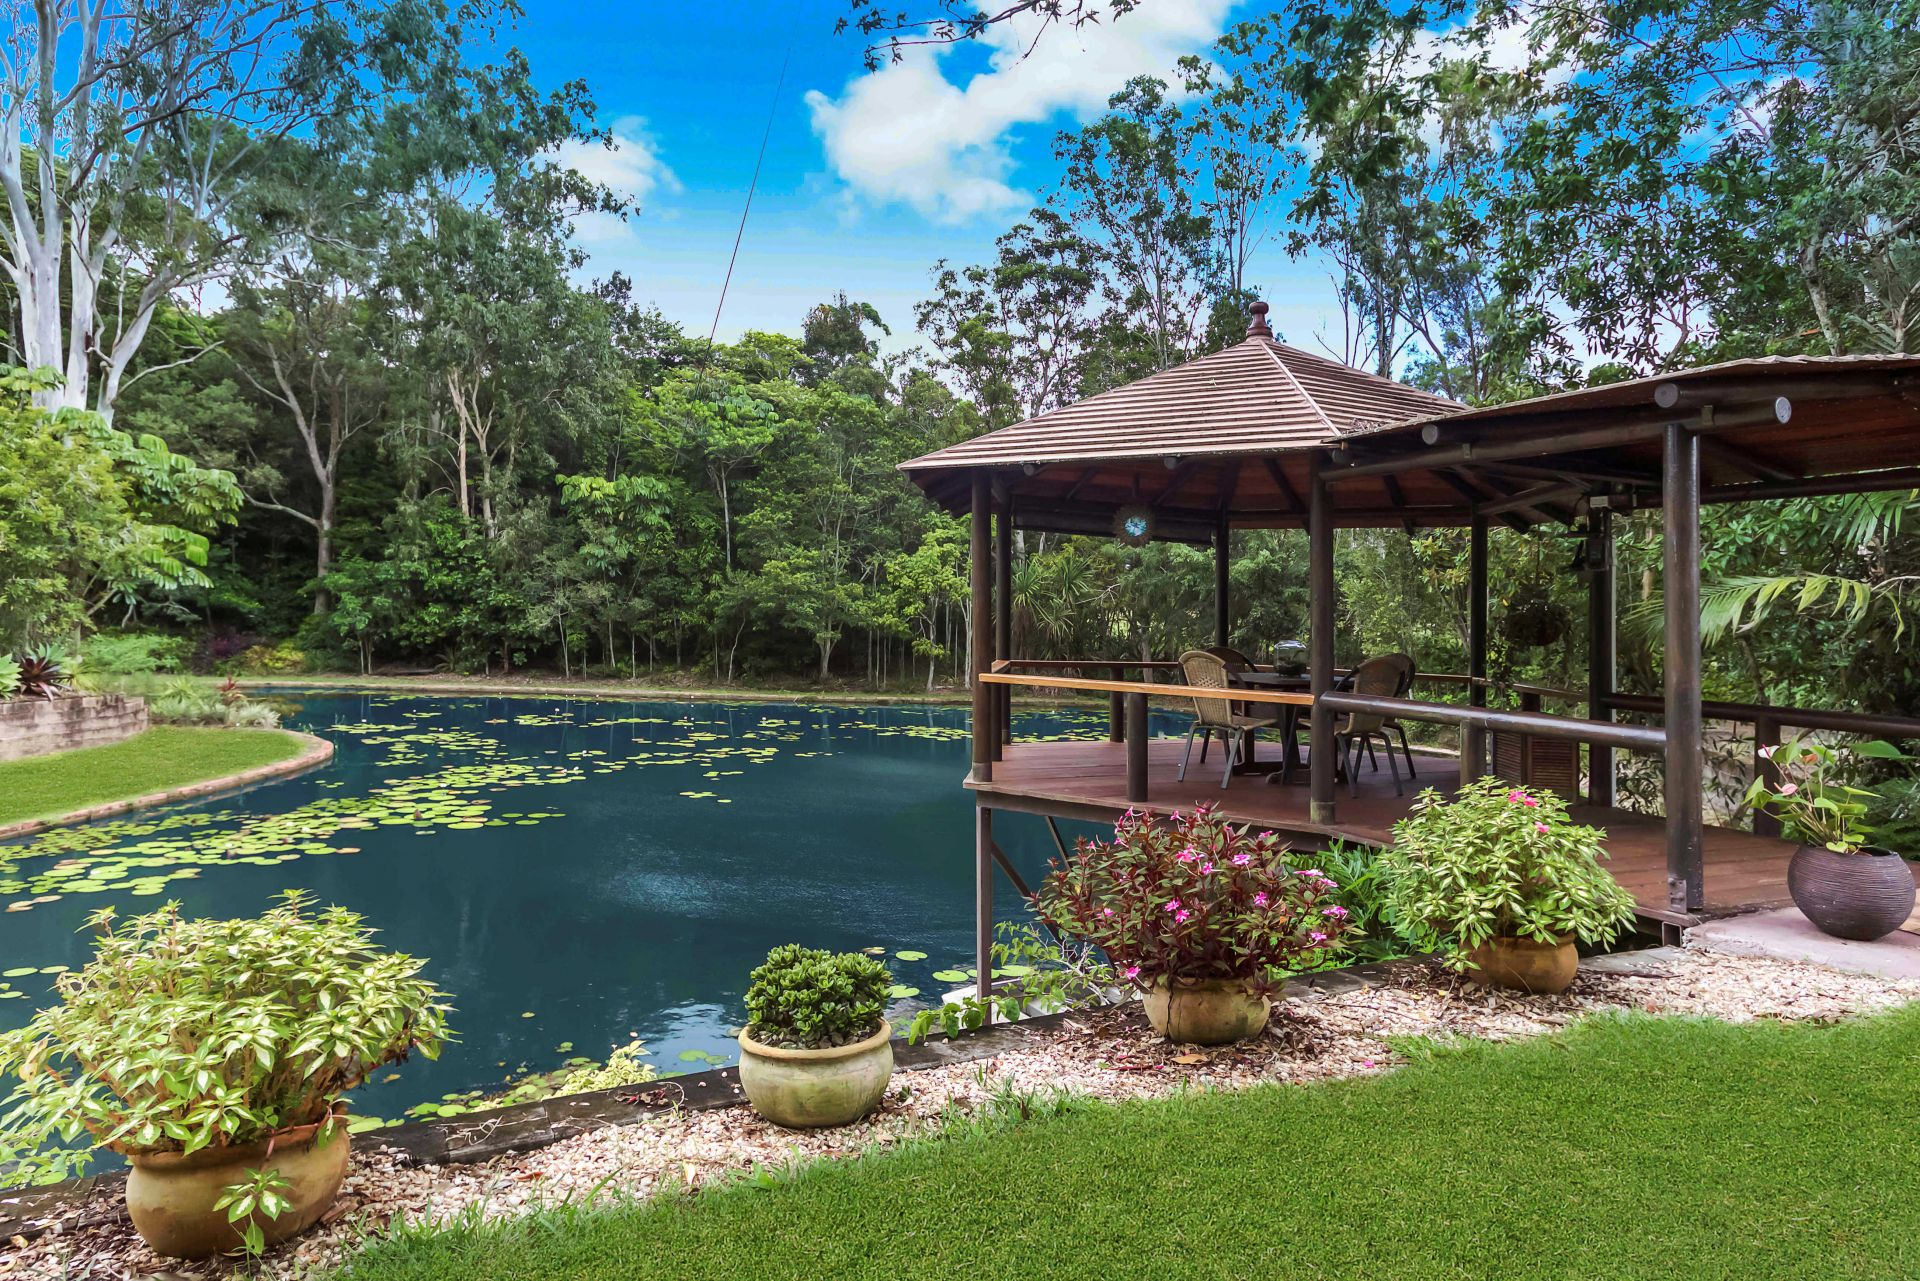 Additional photo for property listing at Idyllic tablelands rainforest retreat with breathtaking grounds   Queensland,4883 오스트레일리아